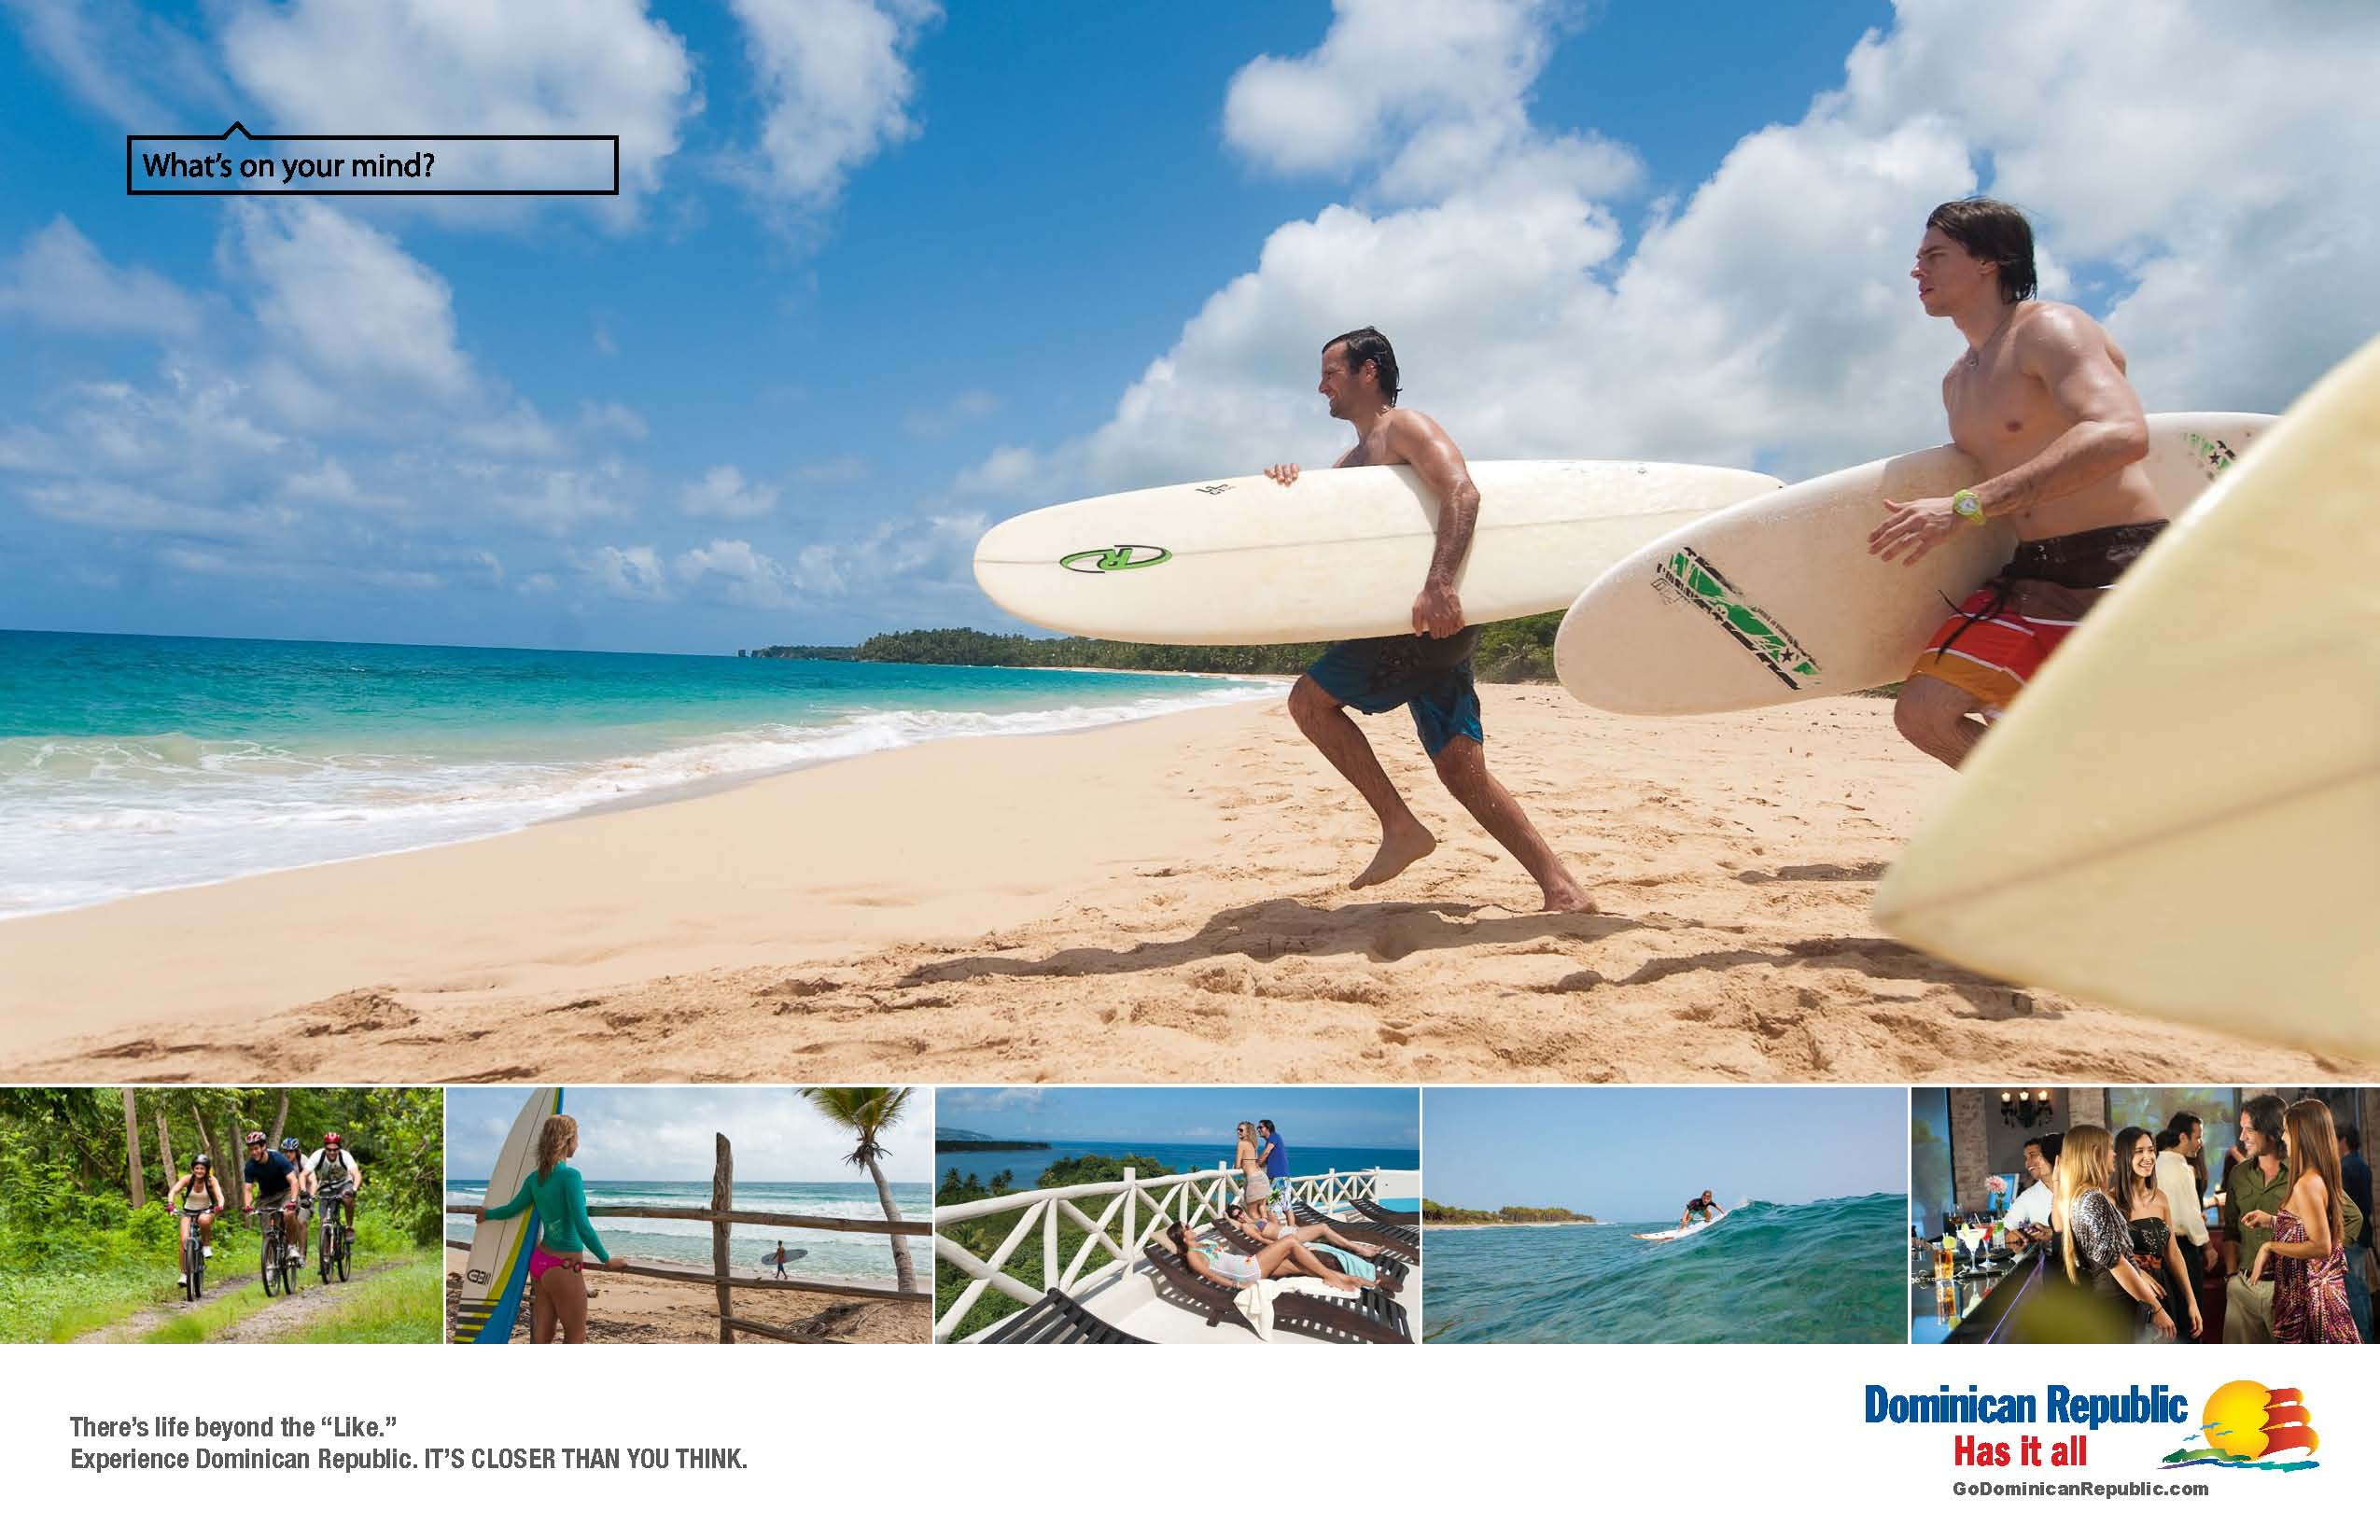 Catch your wave on Jetblue's direct flight to La Romana via JFK and enjoy Dominican Republic's surf, sun and fun!